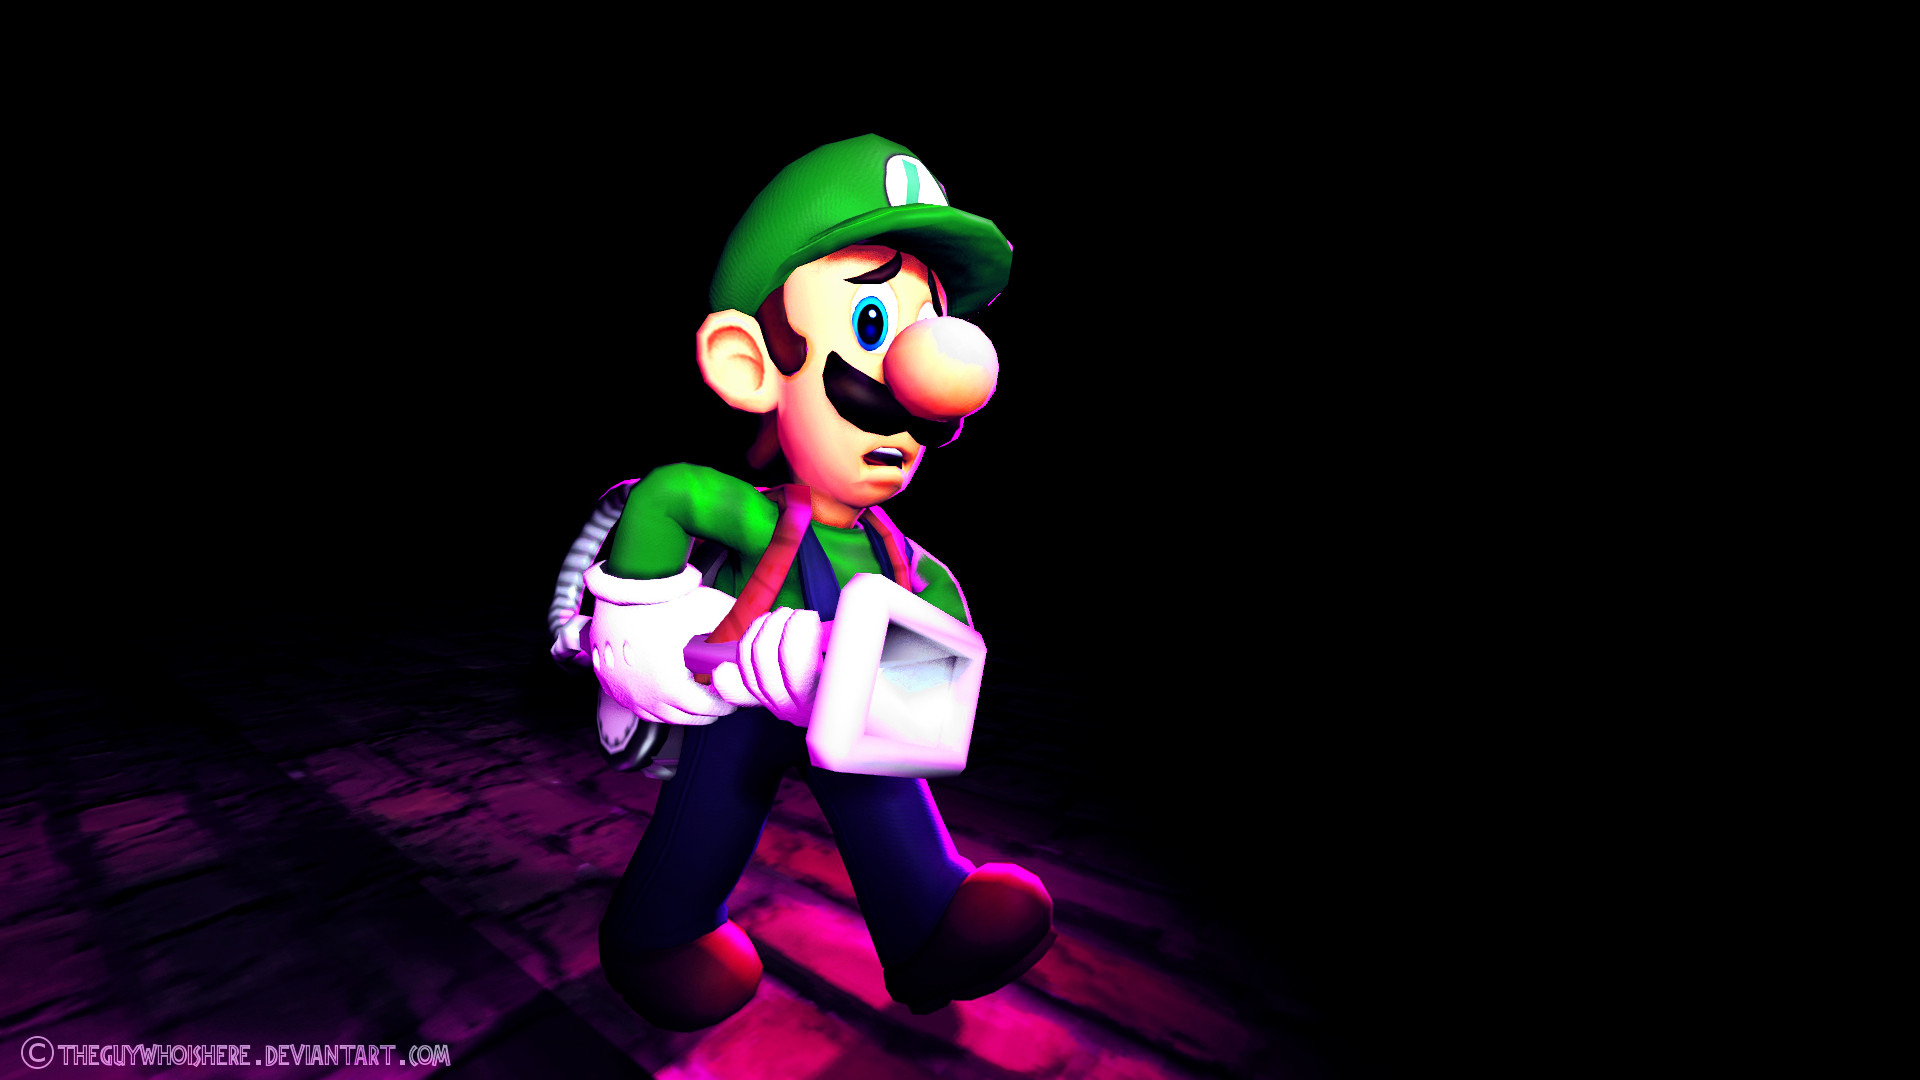 1920x1080 ... theguywhoishere Some Luigi thingy or whatever... by theguywhoishere